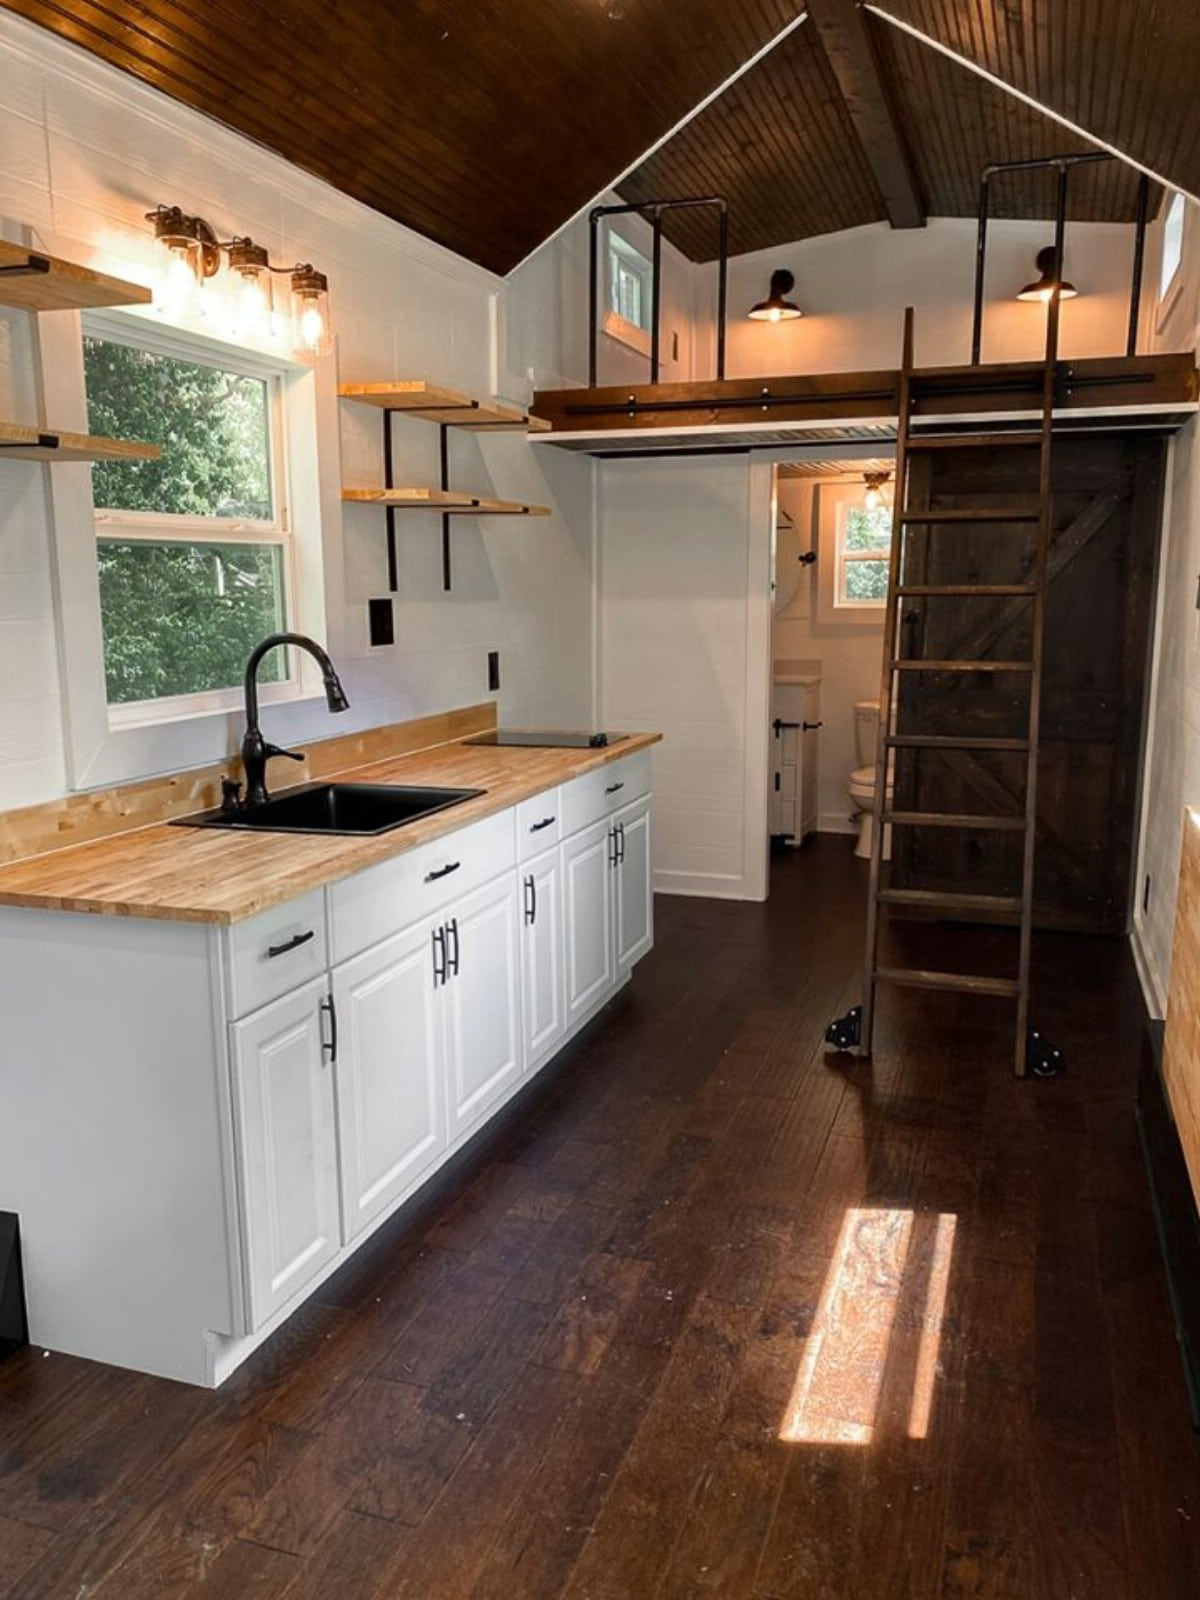 Large sink and kitchen in tiny house